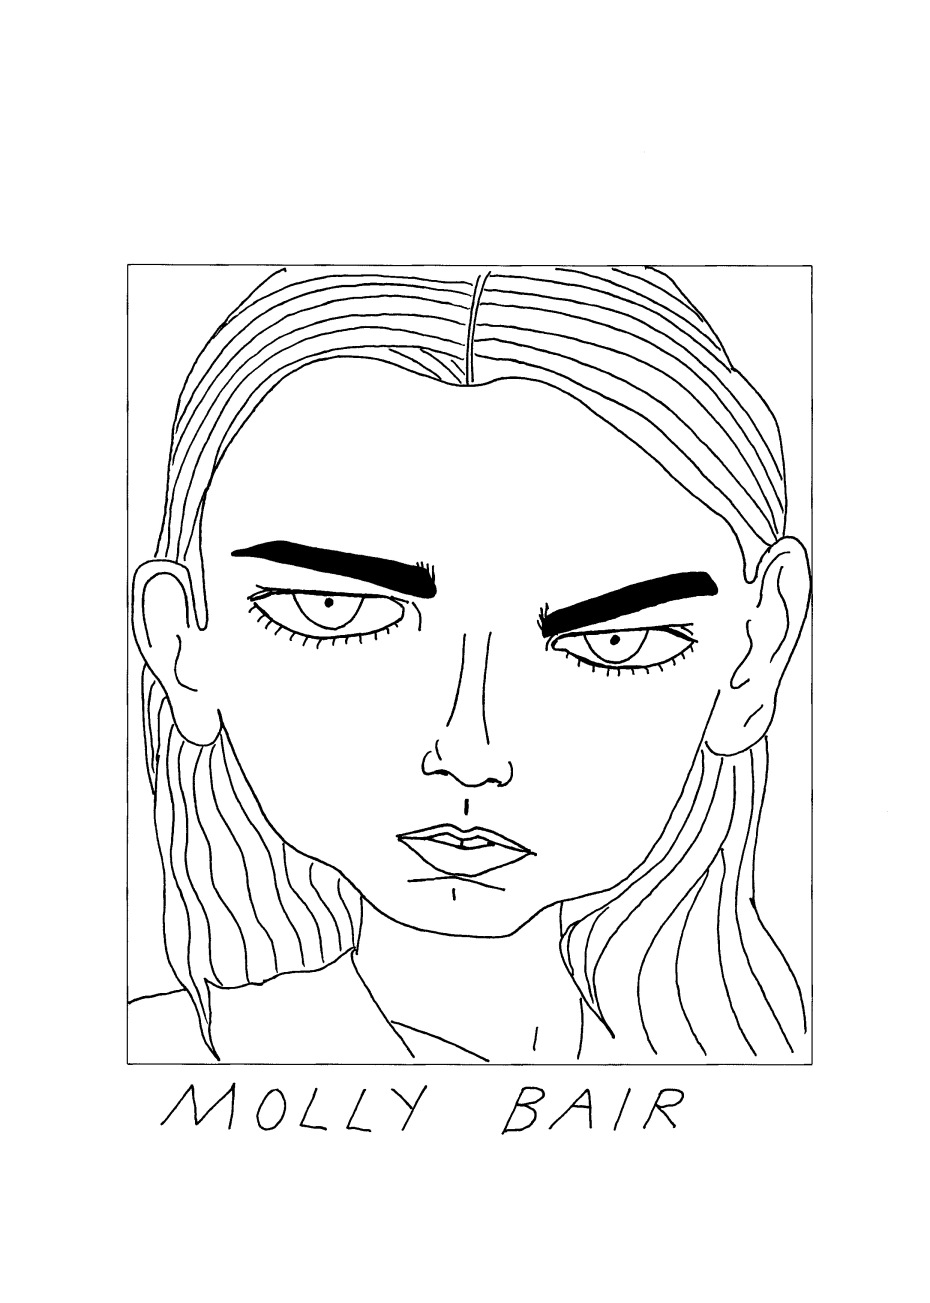 molly bair copy